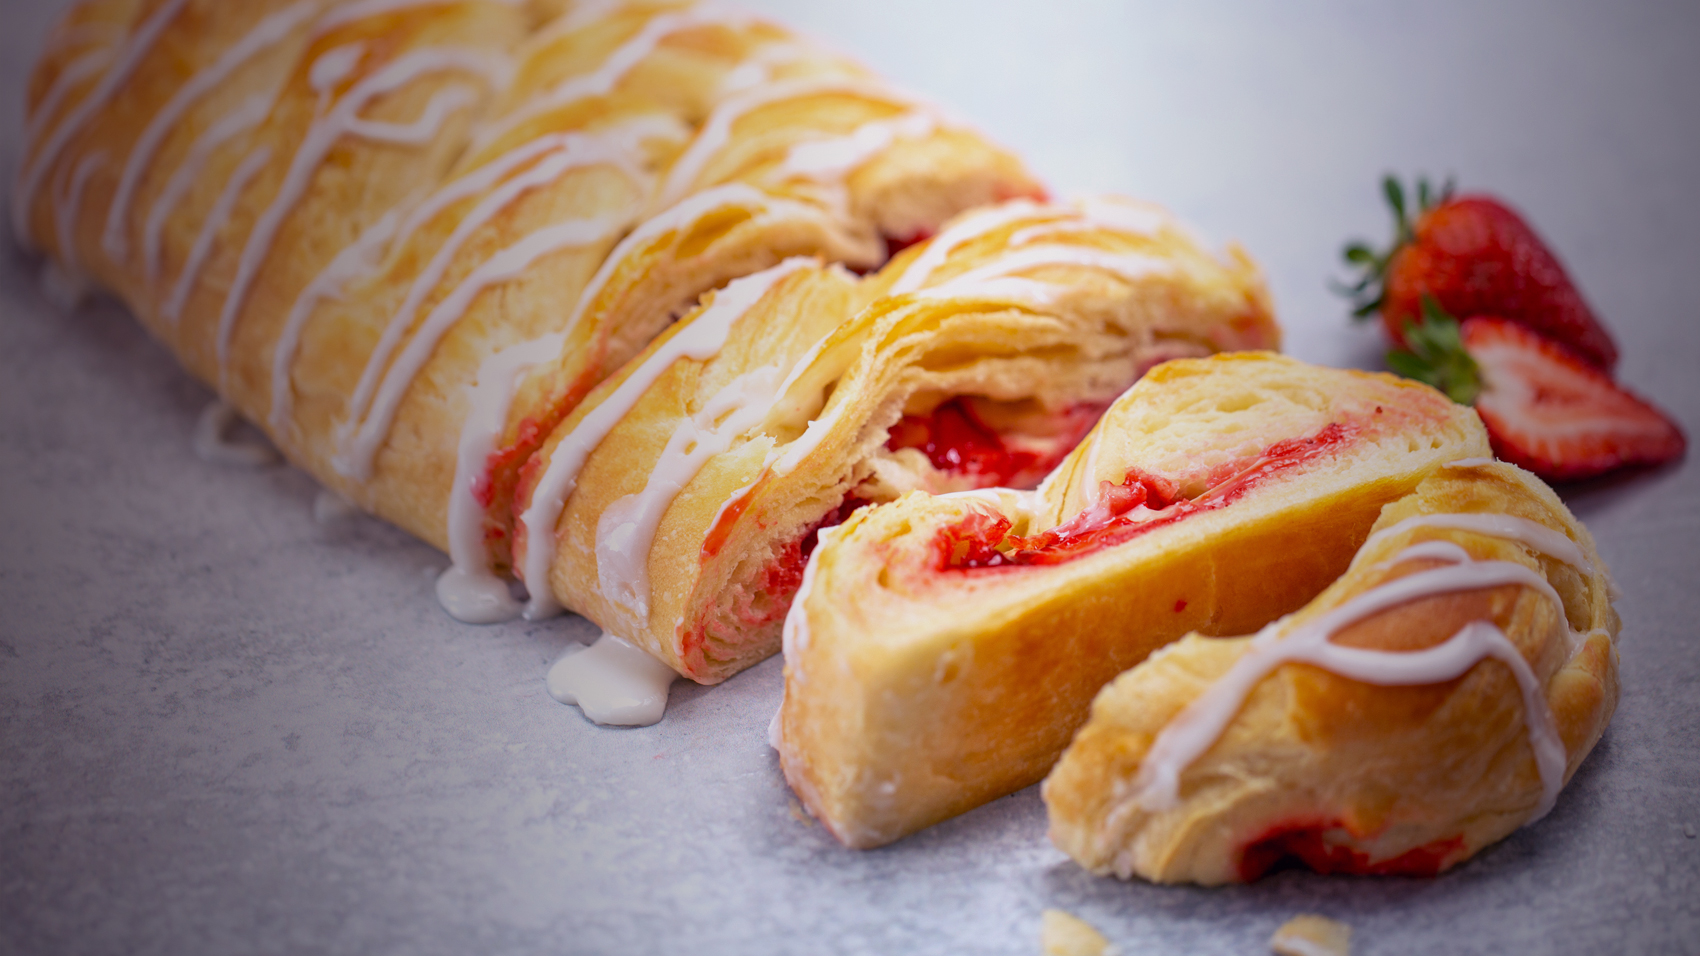 Easy Fundraising Ideas - Butter Braid Fundraising